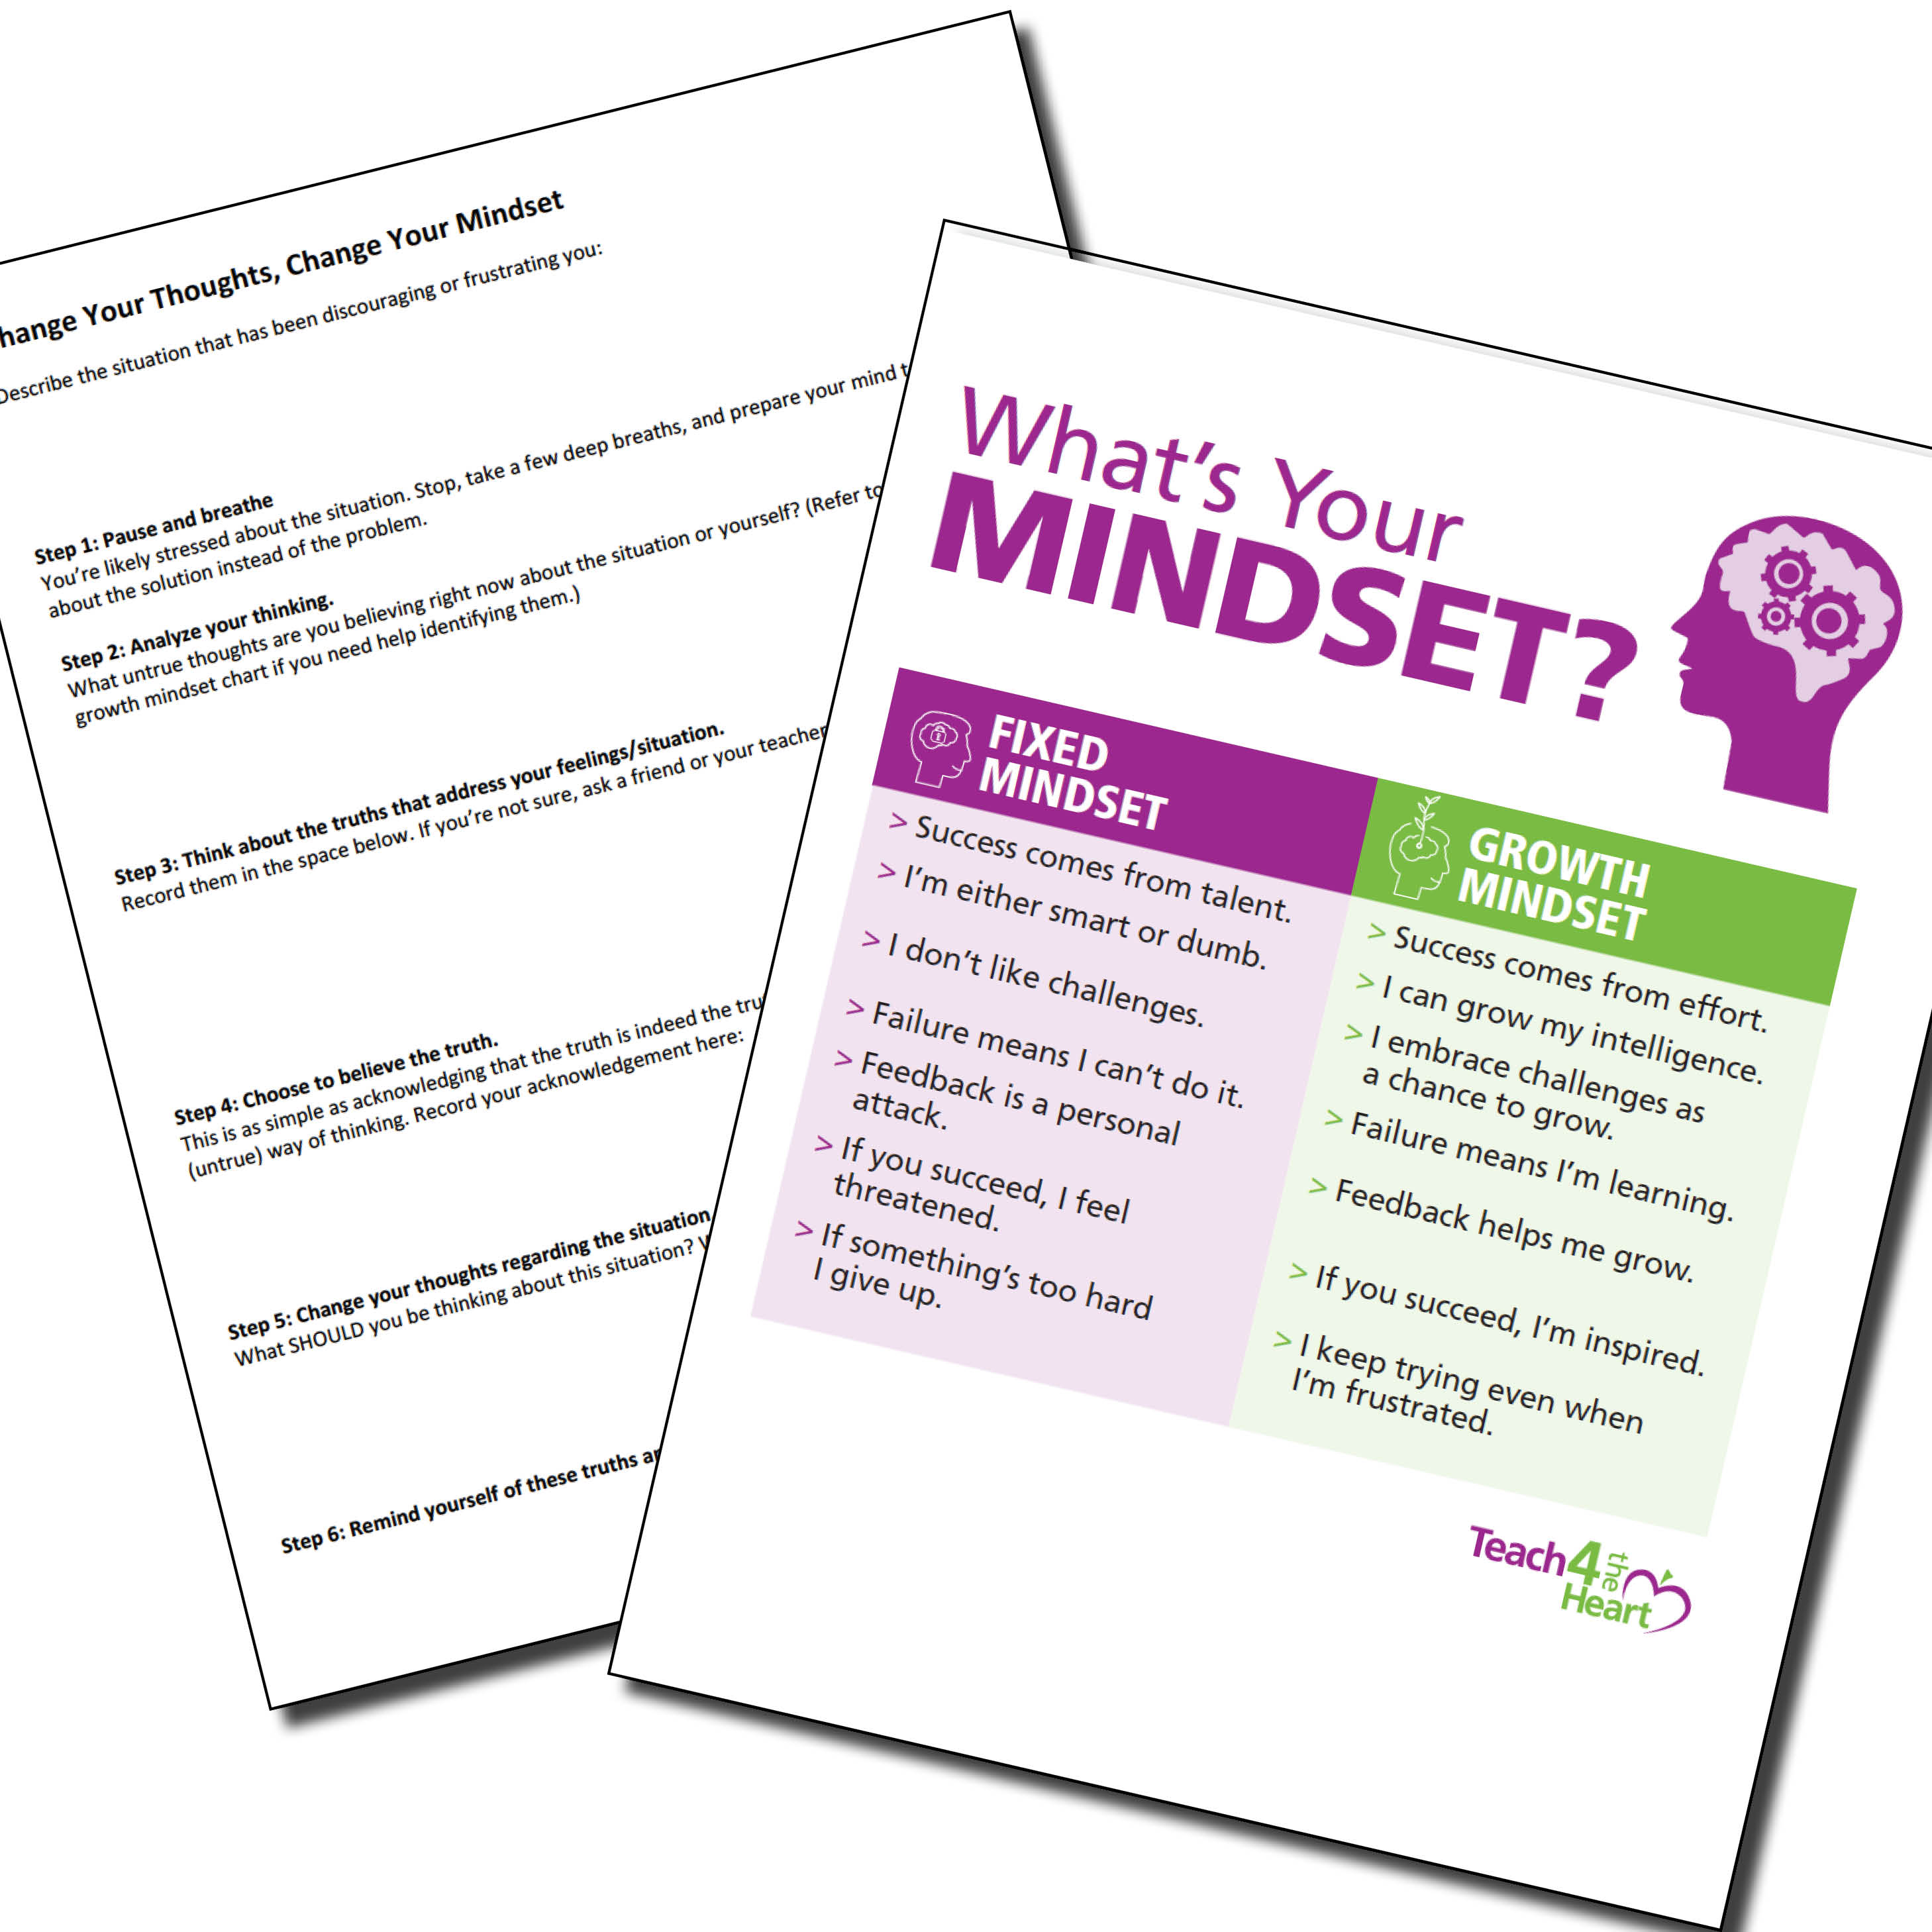 How To Help Your Students Choose A Growth Mindset